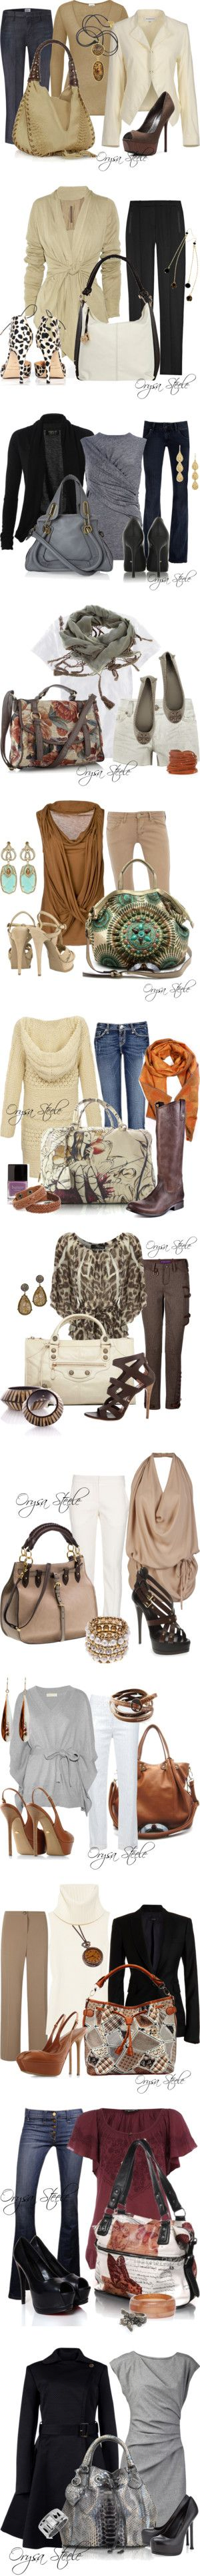 """Oh That Handbag"" by orysa on Polyvore"